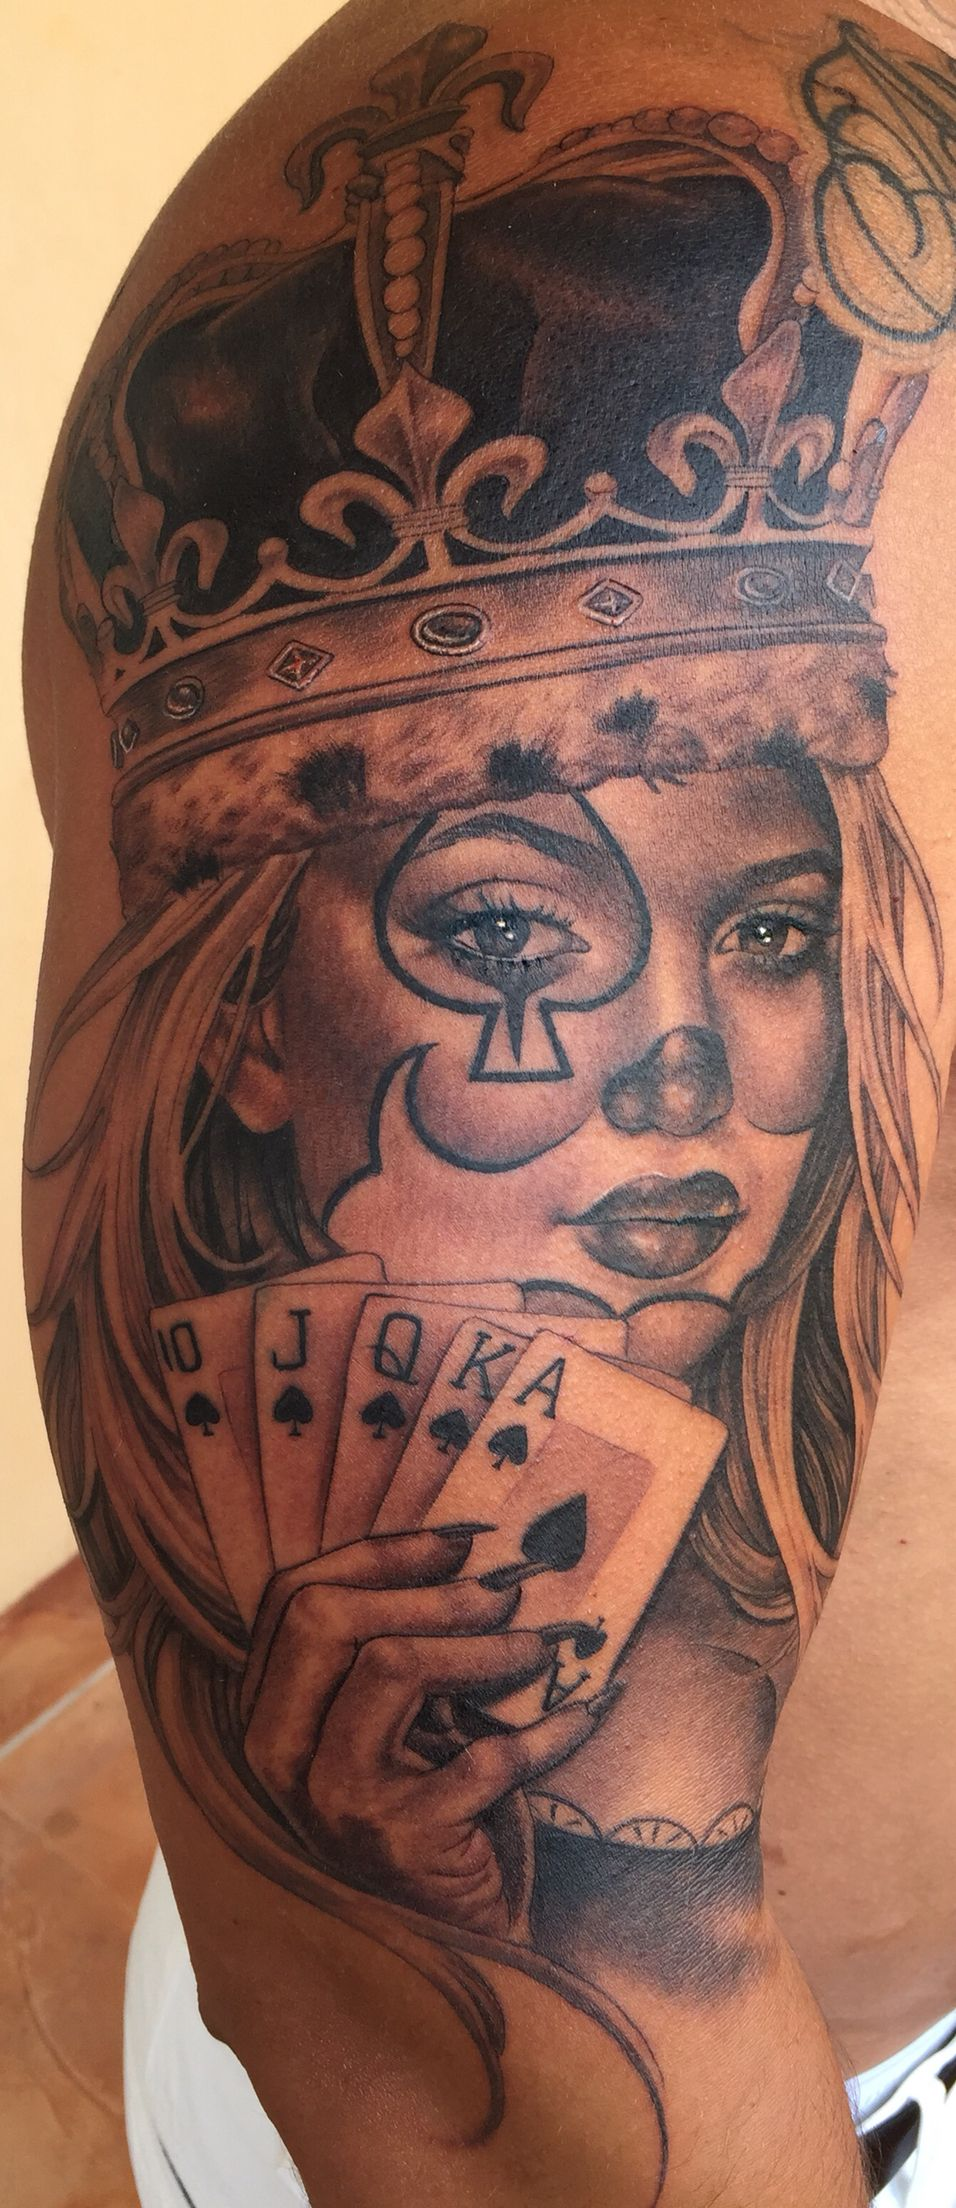 Baby portrait tattoo ideas - Queen Tattoo Ace Of Queens Tattoo Done By Tatu Baby